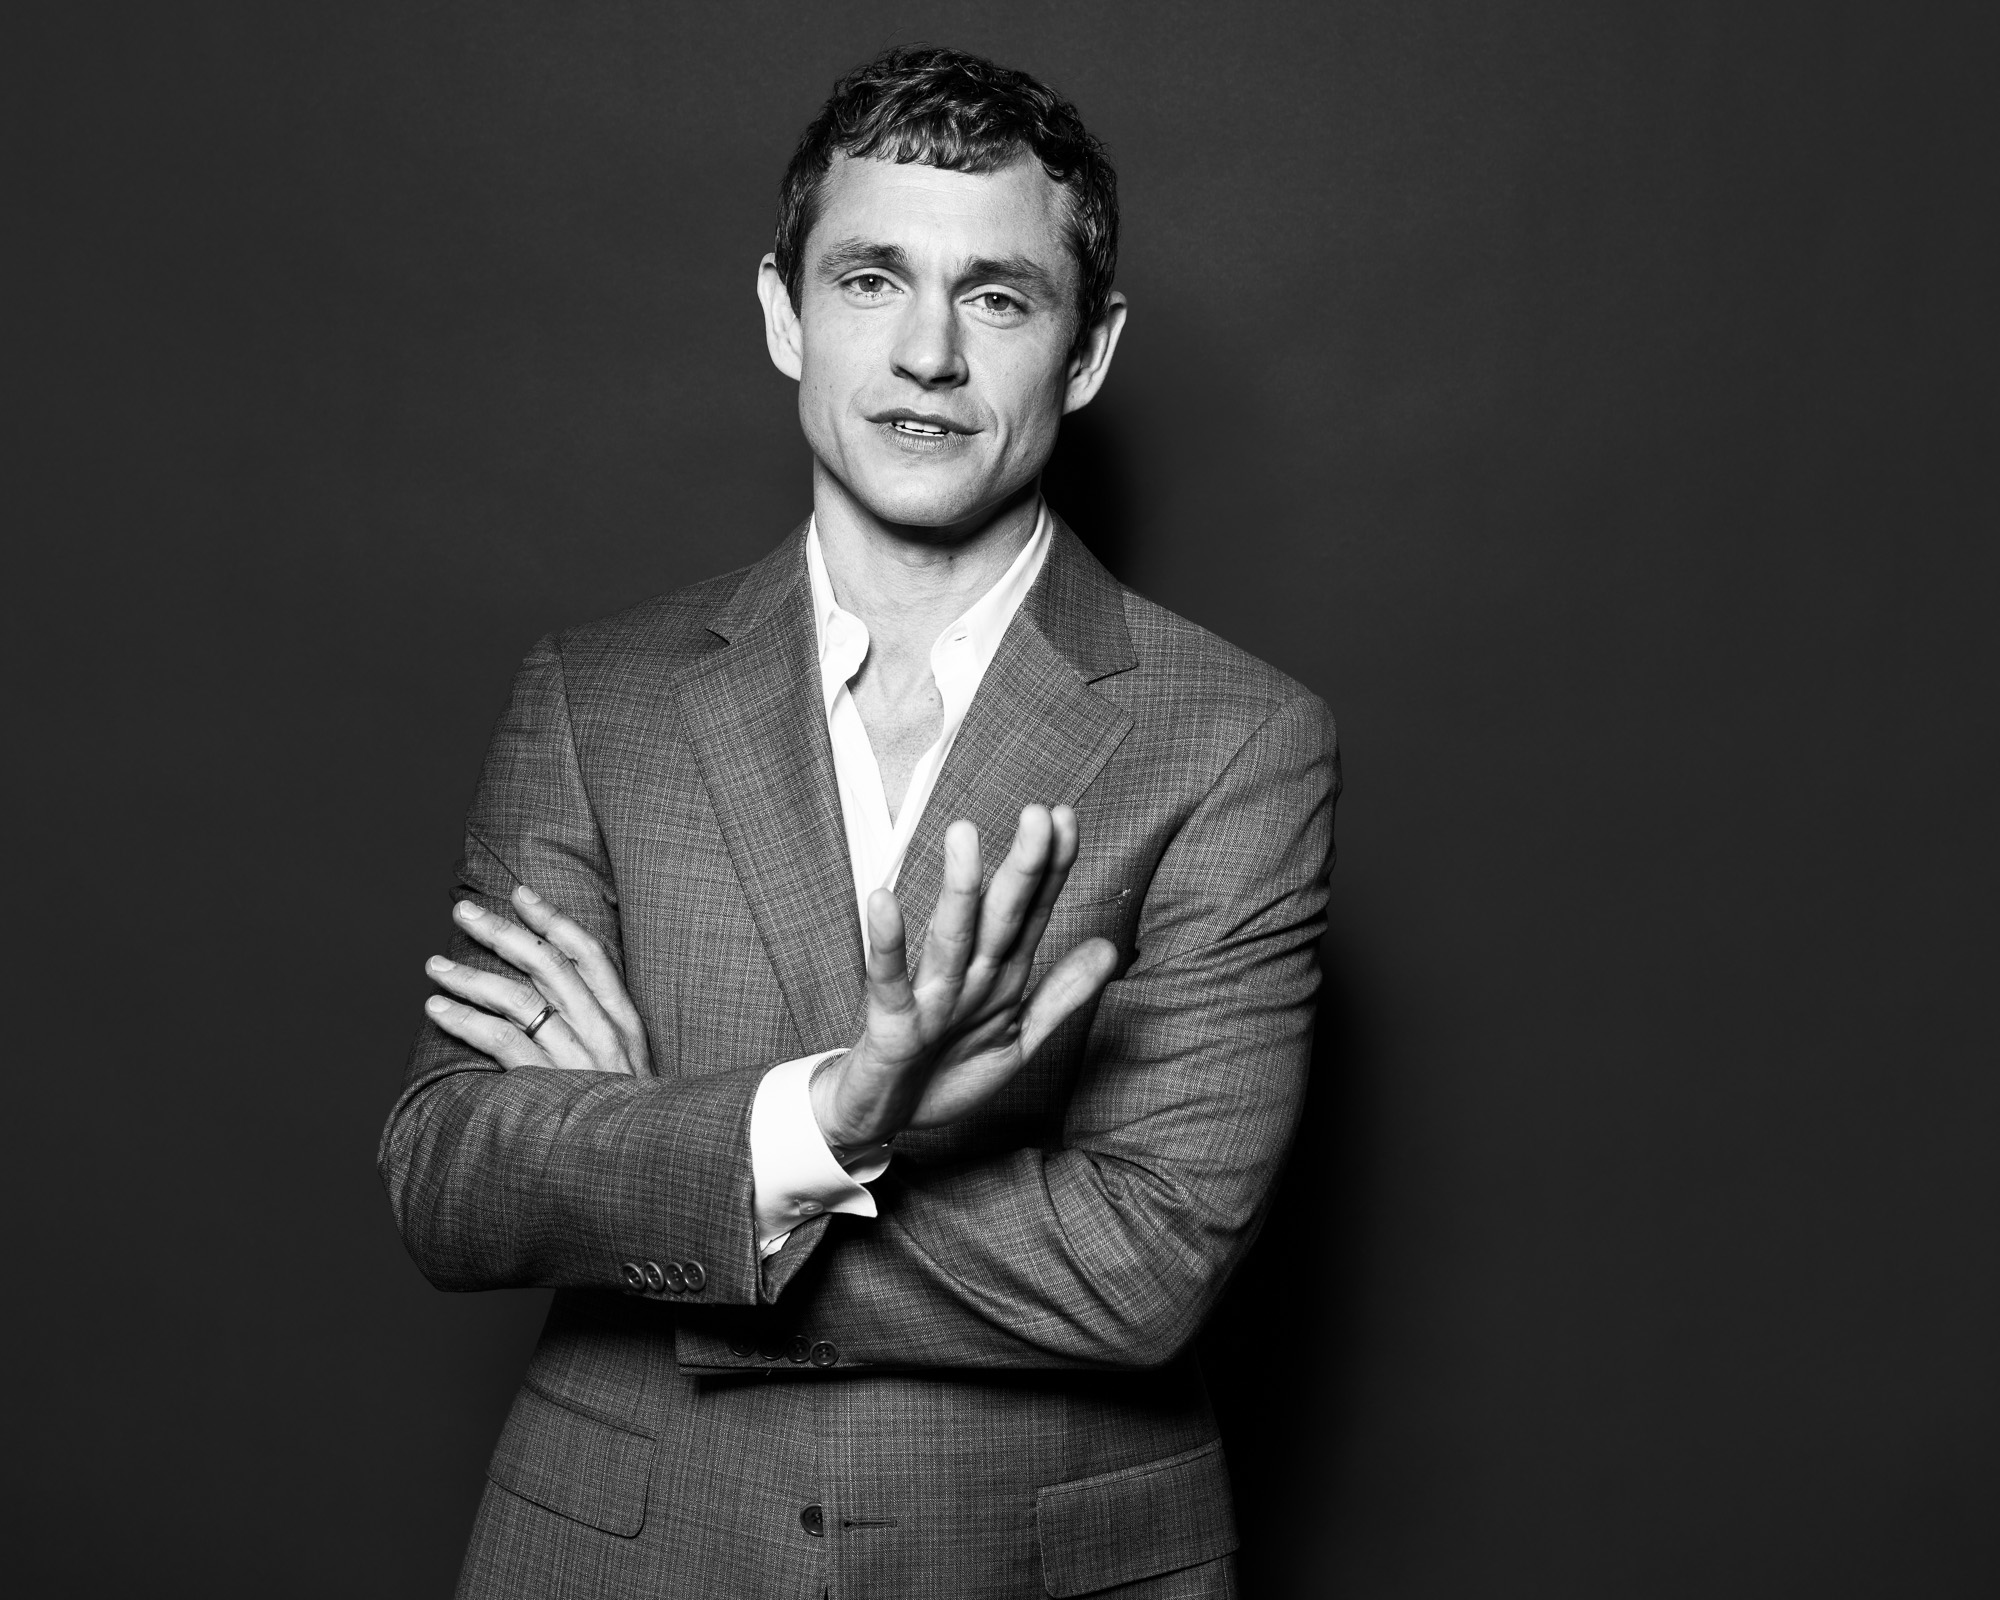 Hugh Dancy photographed by Eric Schwabel